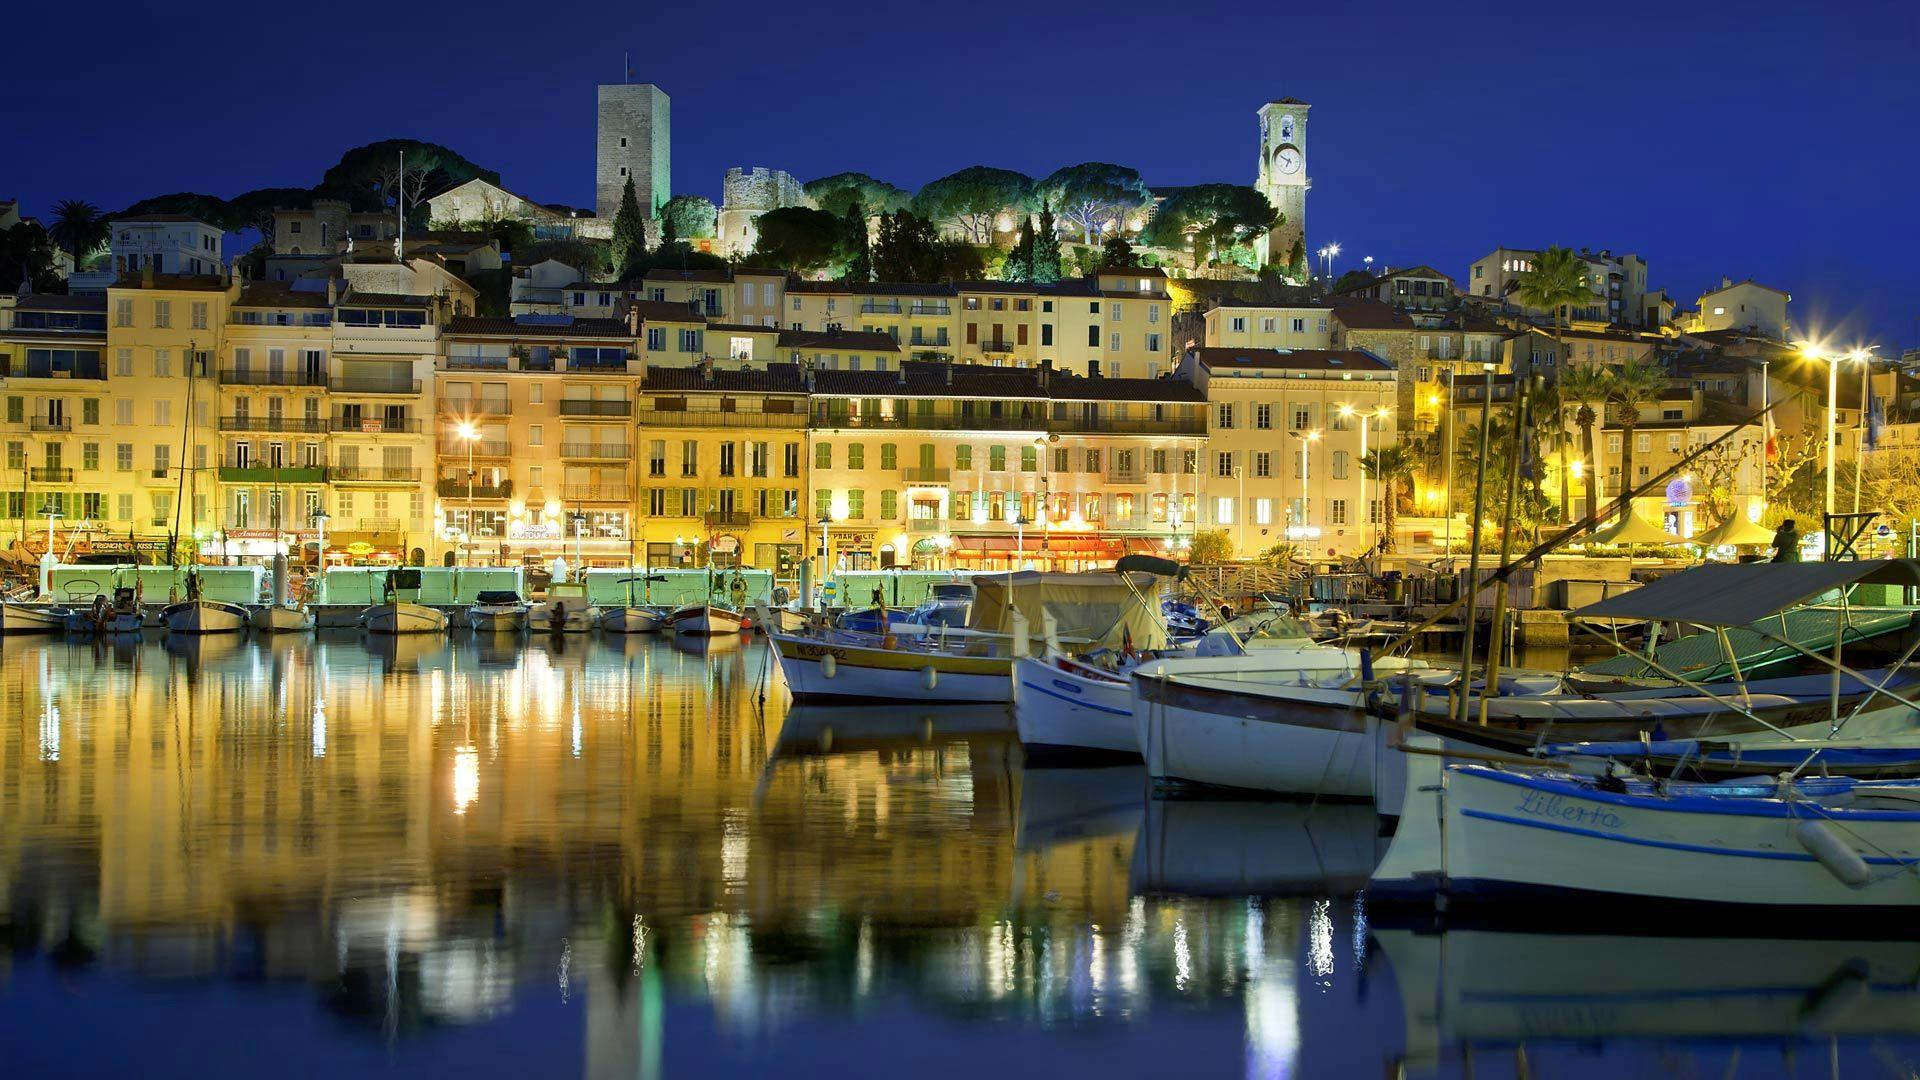 Wallpapers Alpes Maritimes, France, houses, old city, lights, Suquet